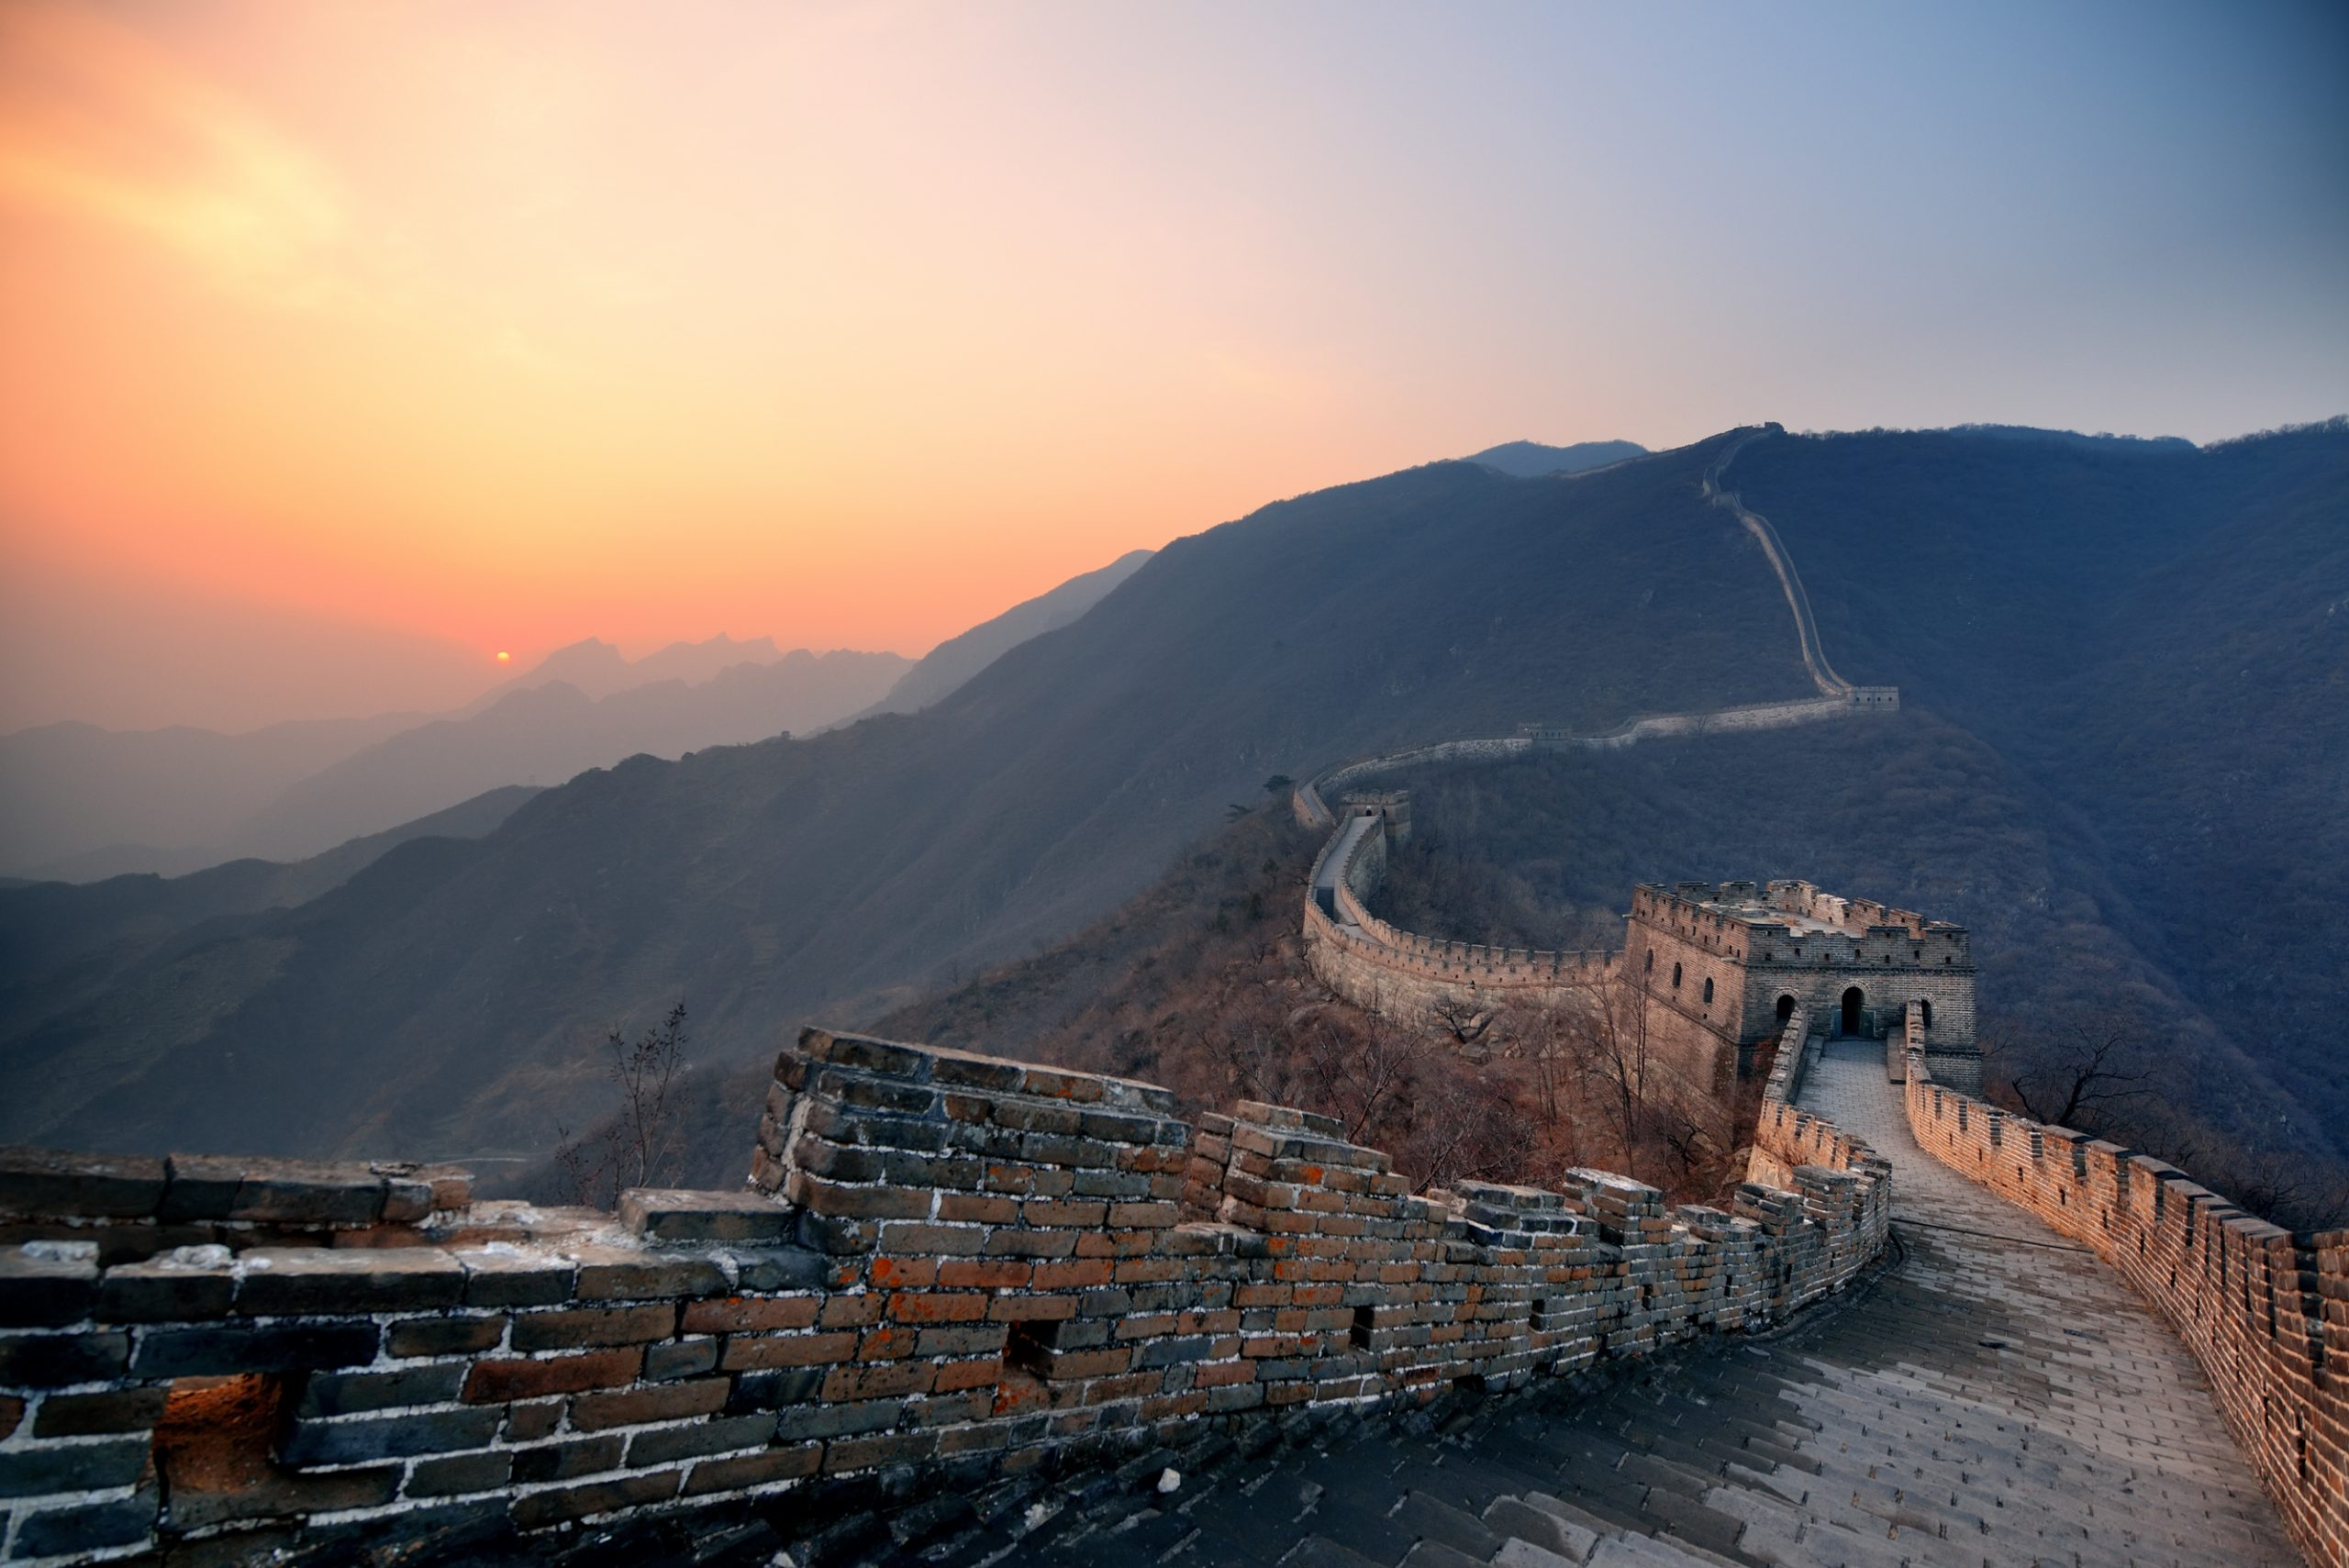 Amazon and the Great Firewall of China